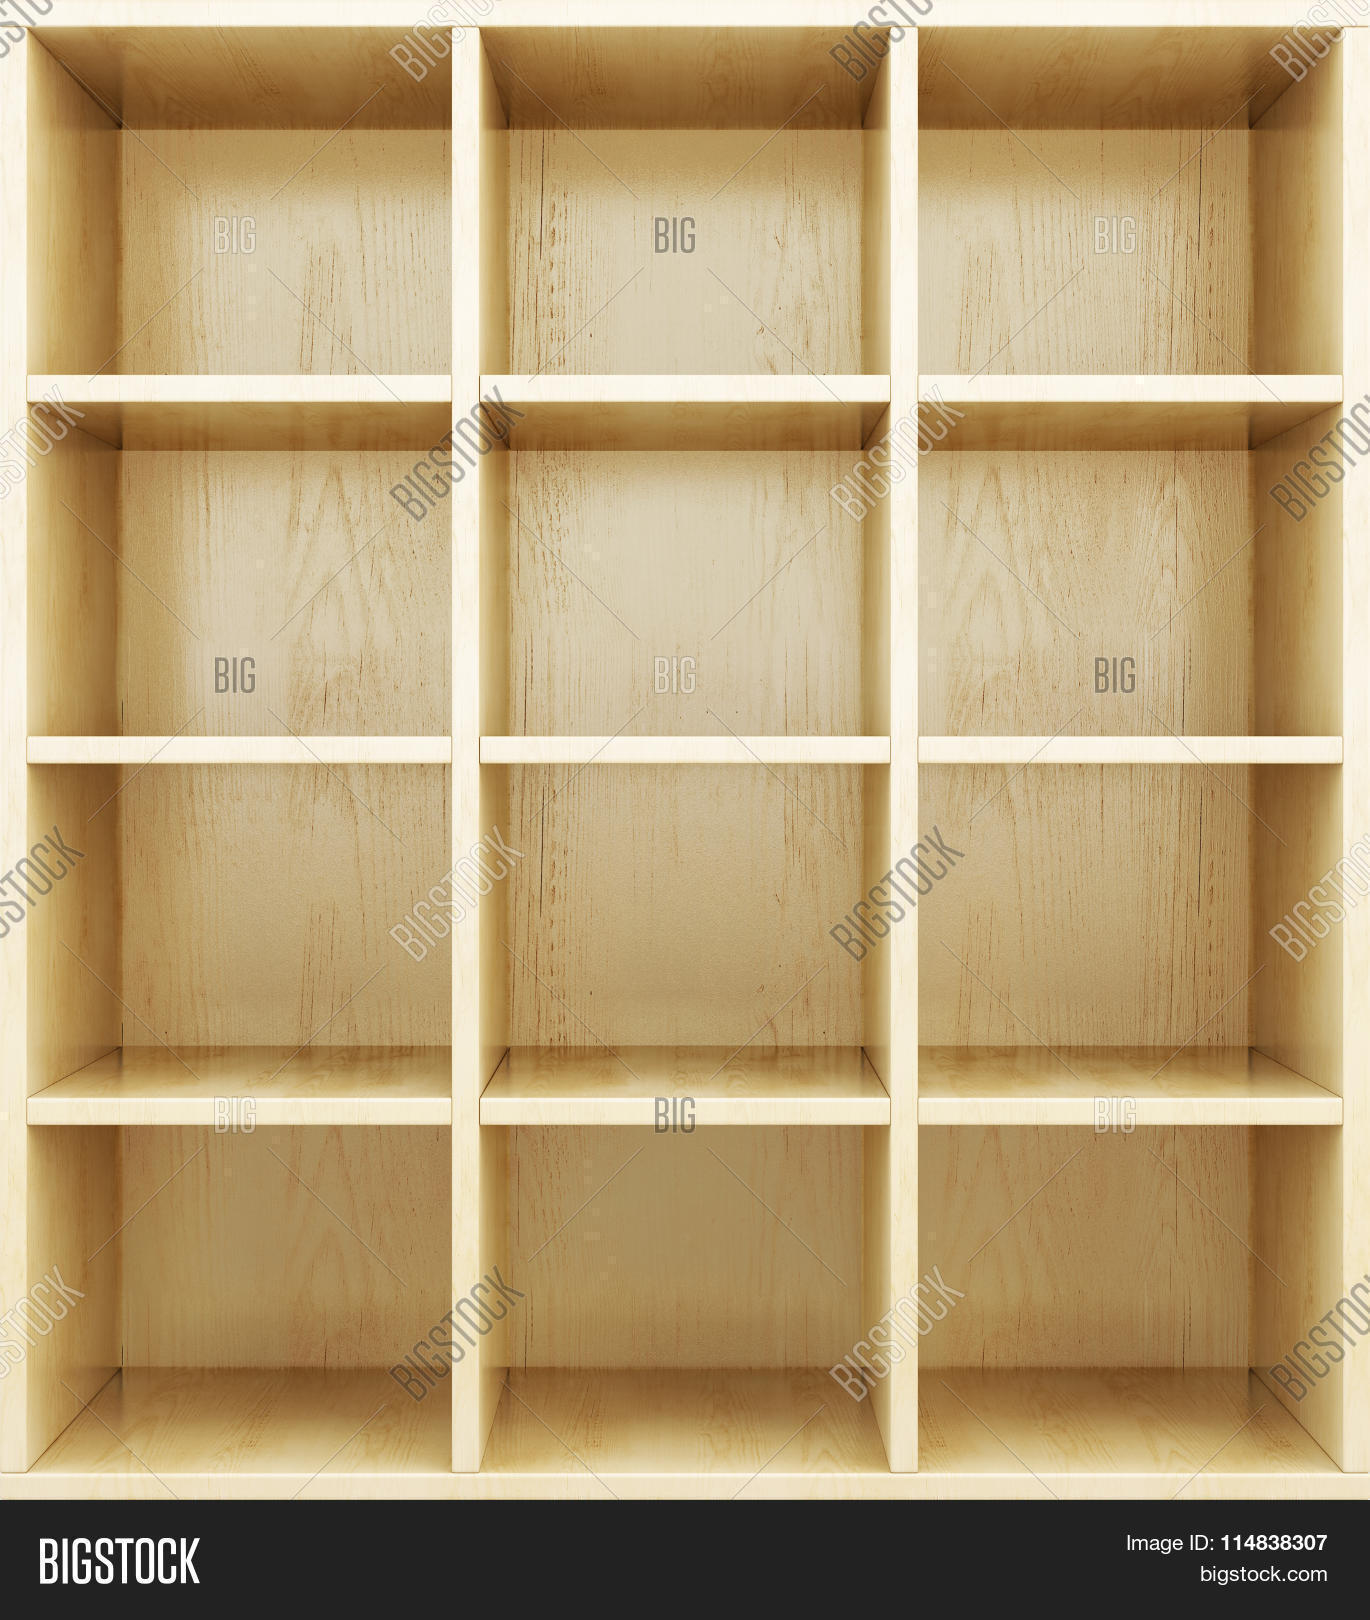 Empty Wooden Shelves Image & Photo (free Trial) | Bigstock